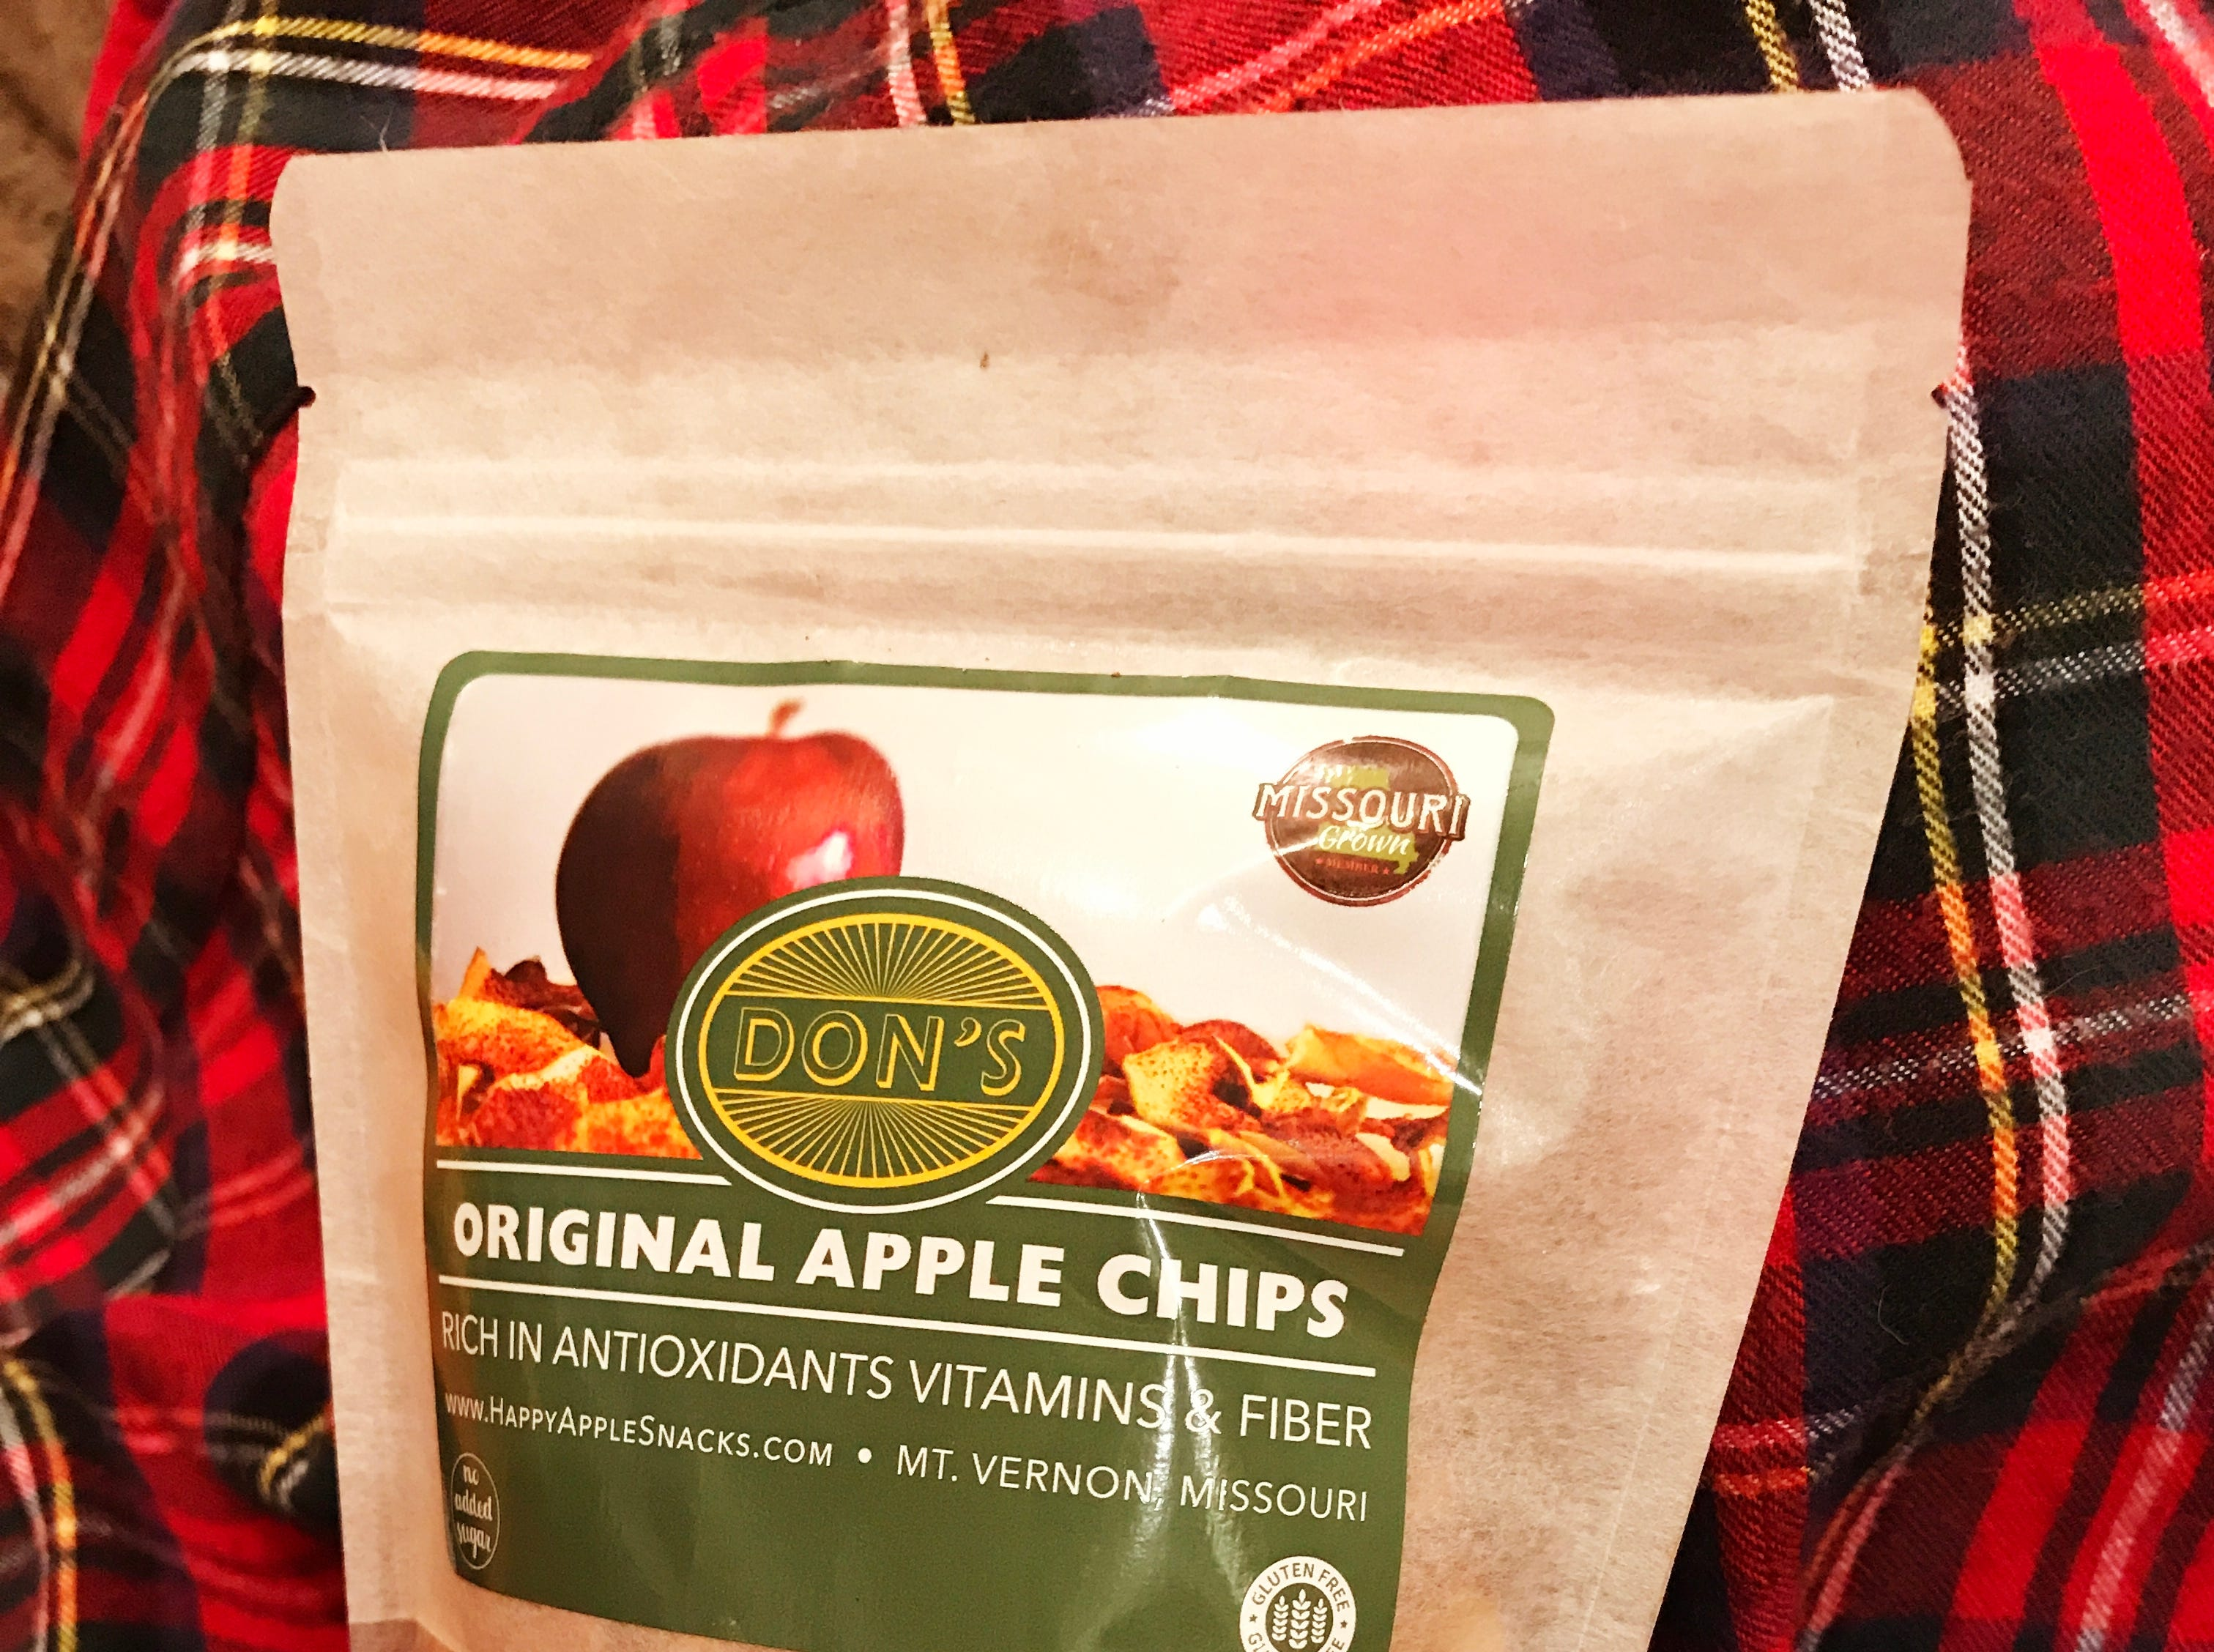 Don's Happy Apple Snacks in Mt. Vernon makes several types of apple and kale chips.